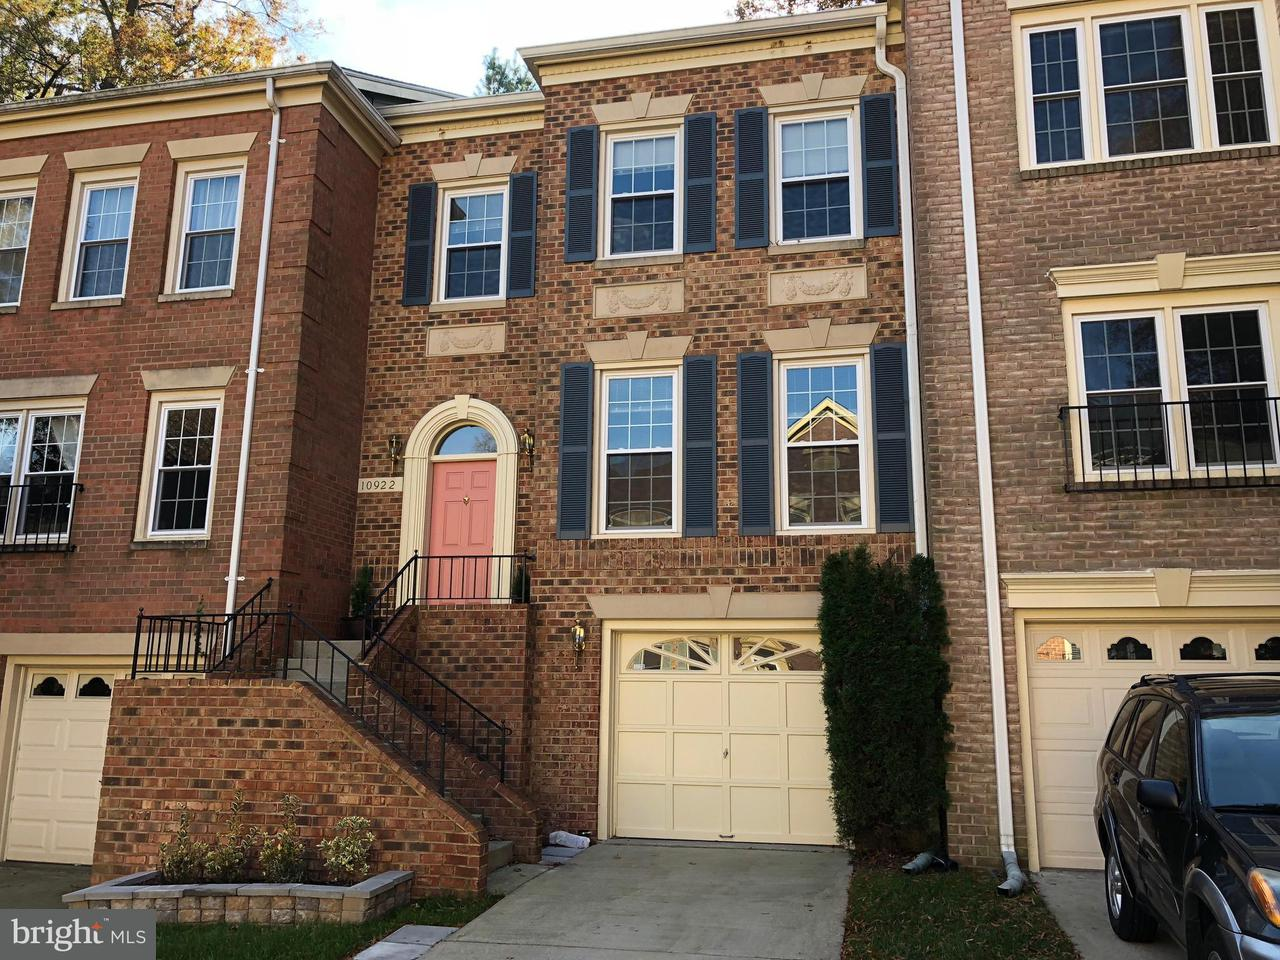 Townhouse for Sale at 10922 Rocky Mt Way 10922 Rocky Mt Way Silver Spring, Maryland 20902 United States